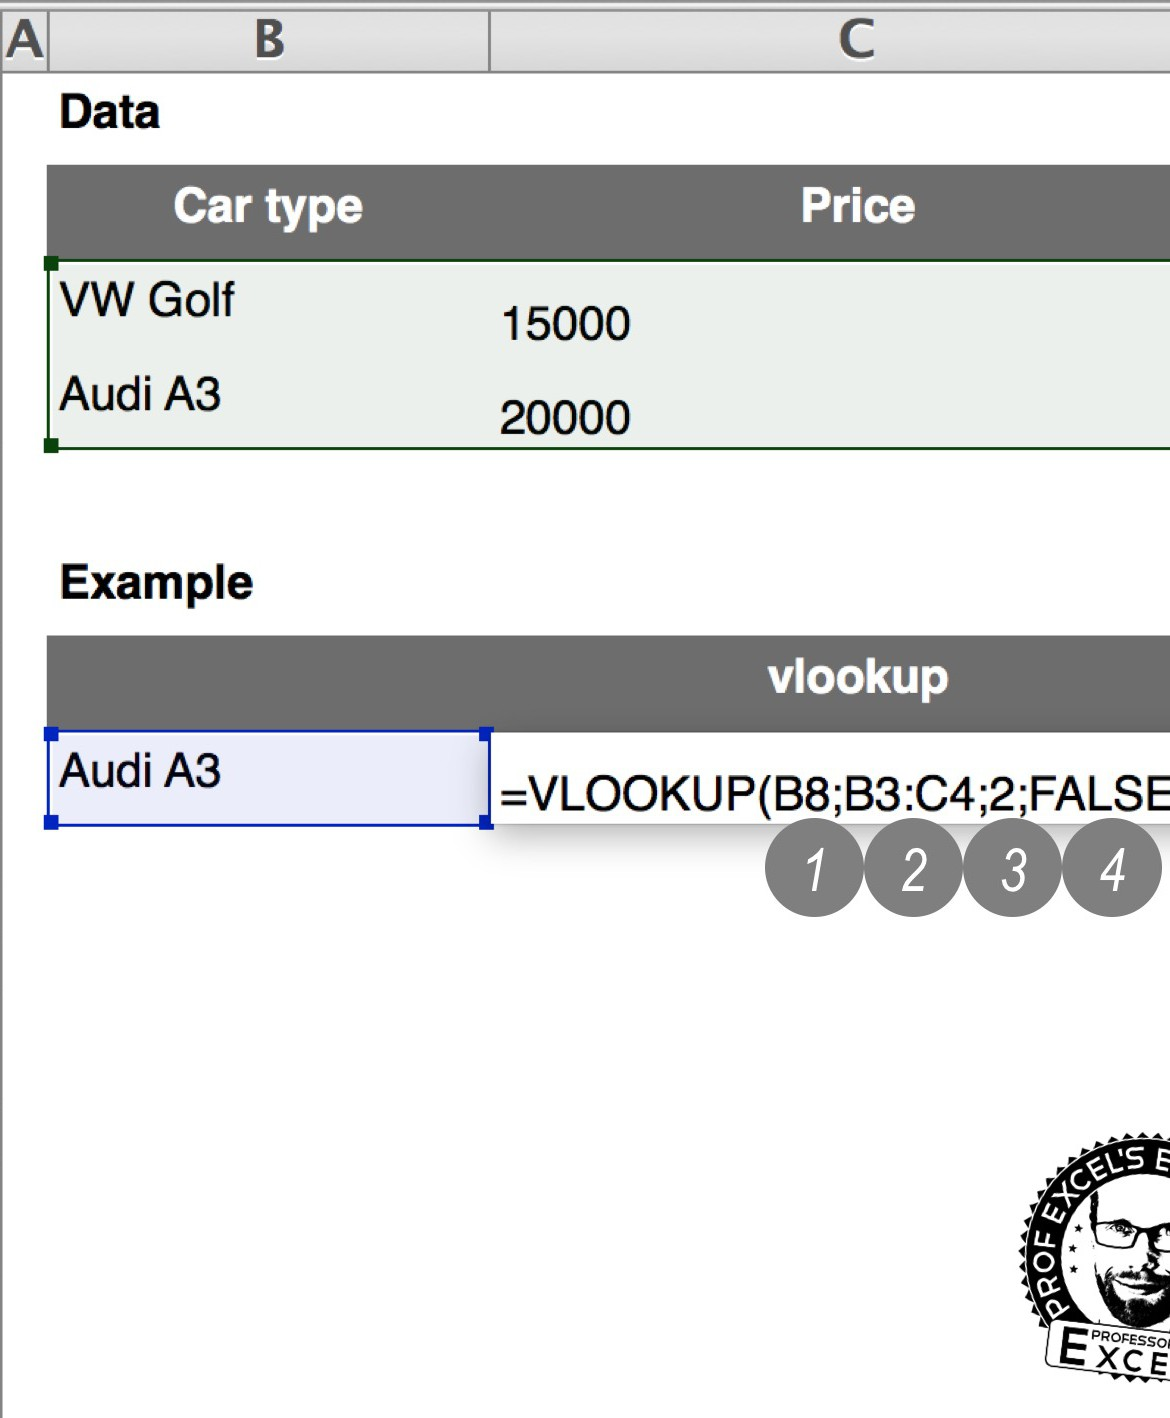 vlookup, example, explanation